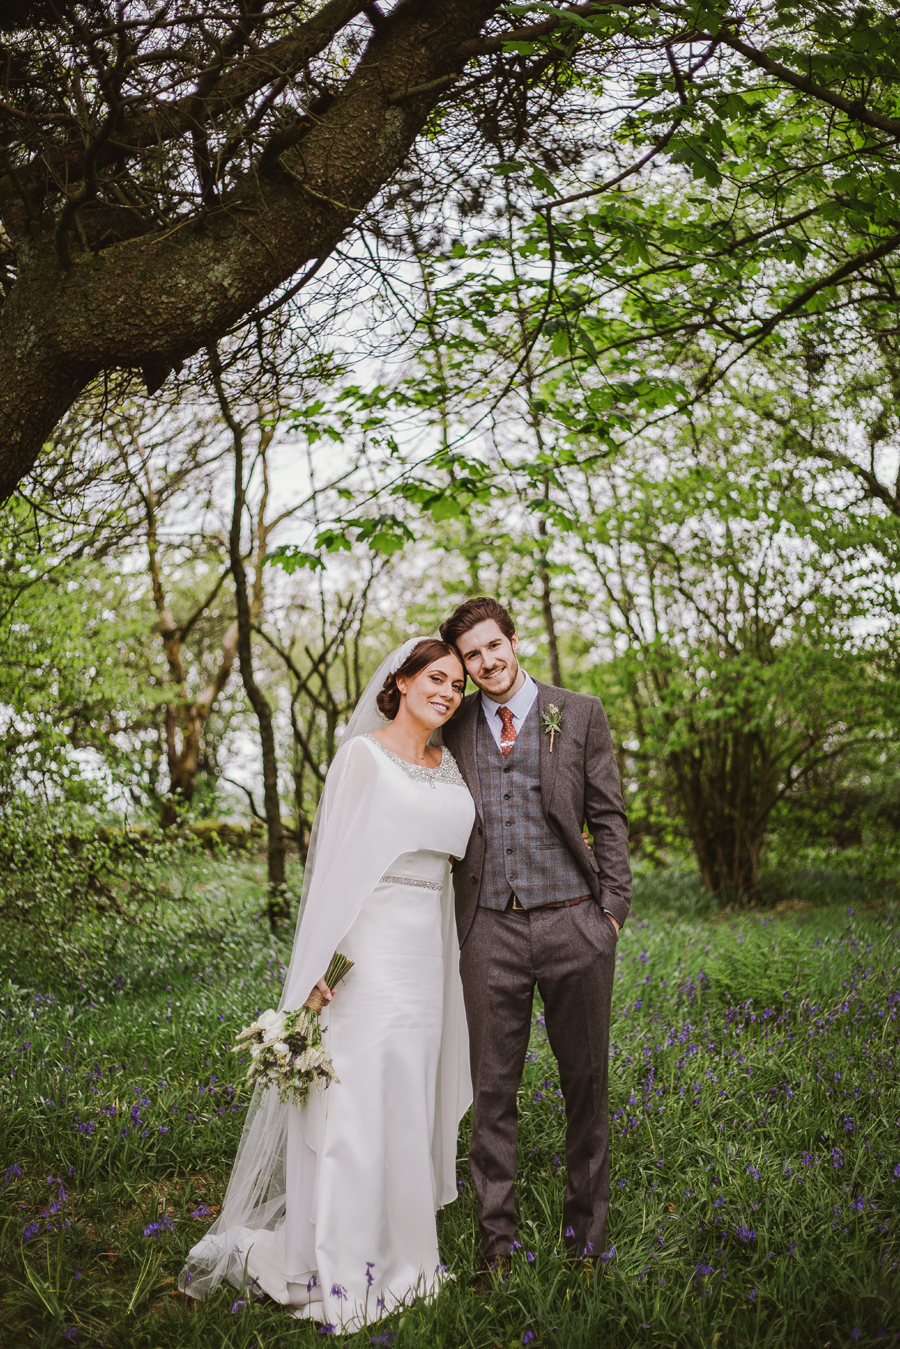 Cheshire wedding photographer - Heaton House Farm